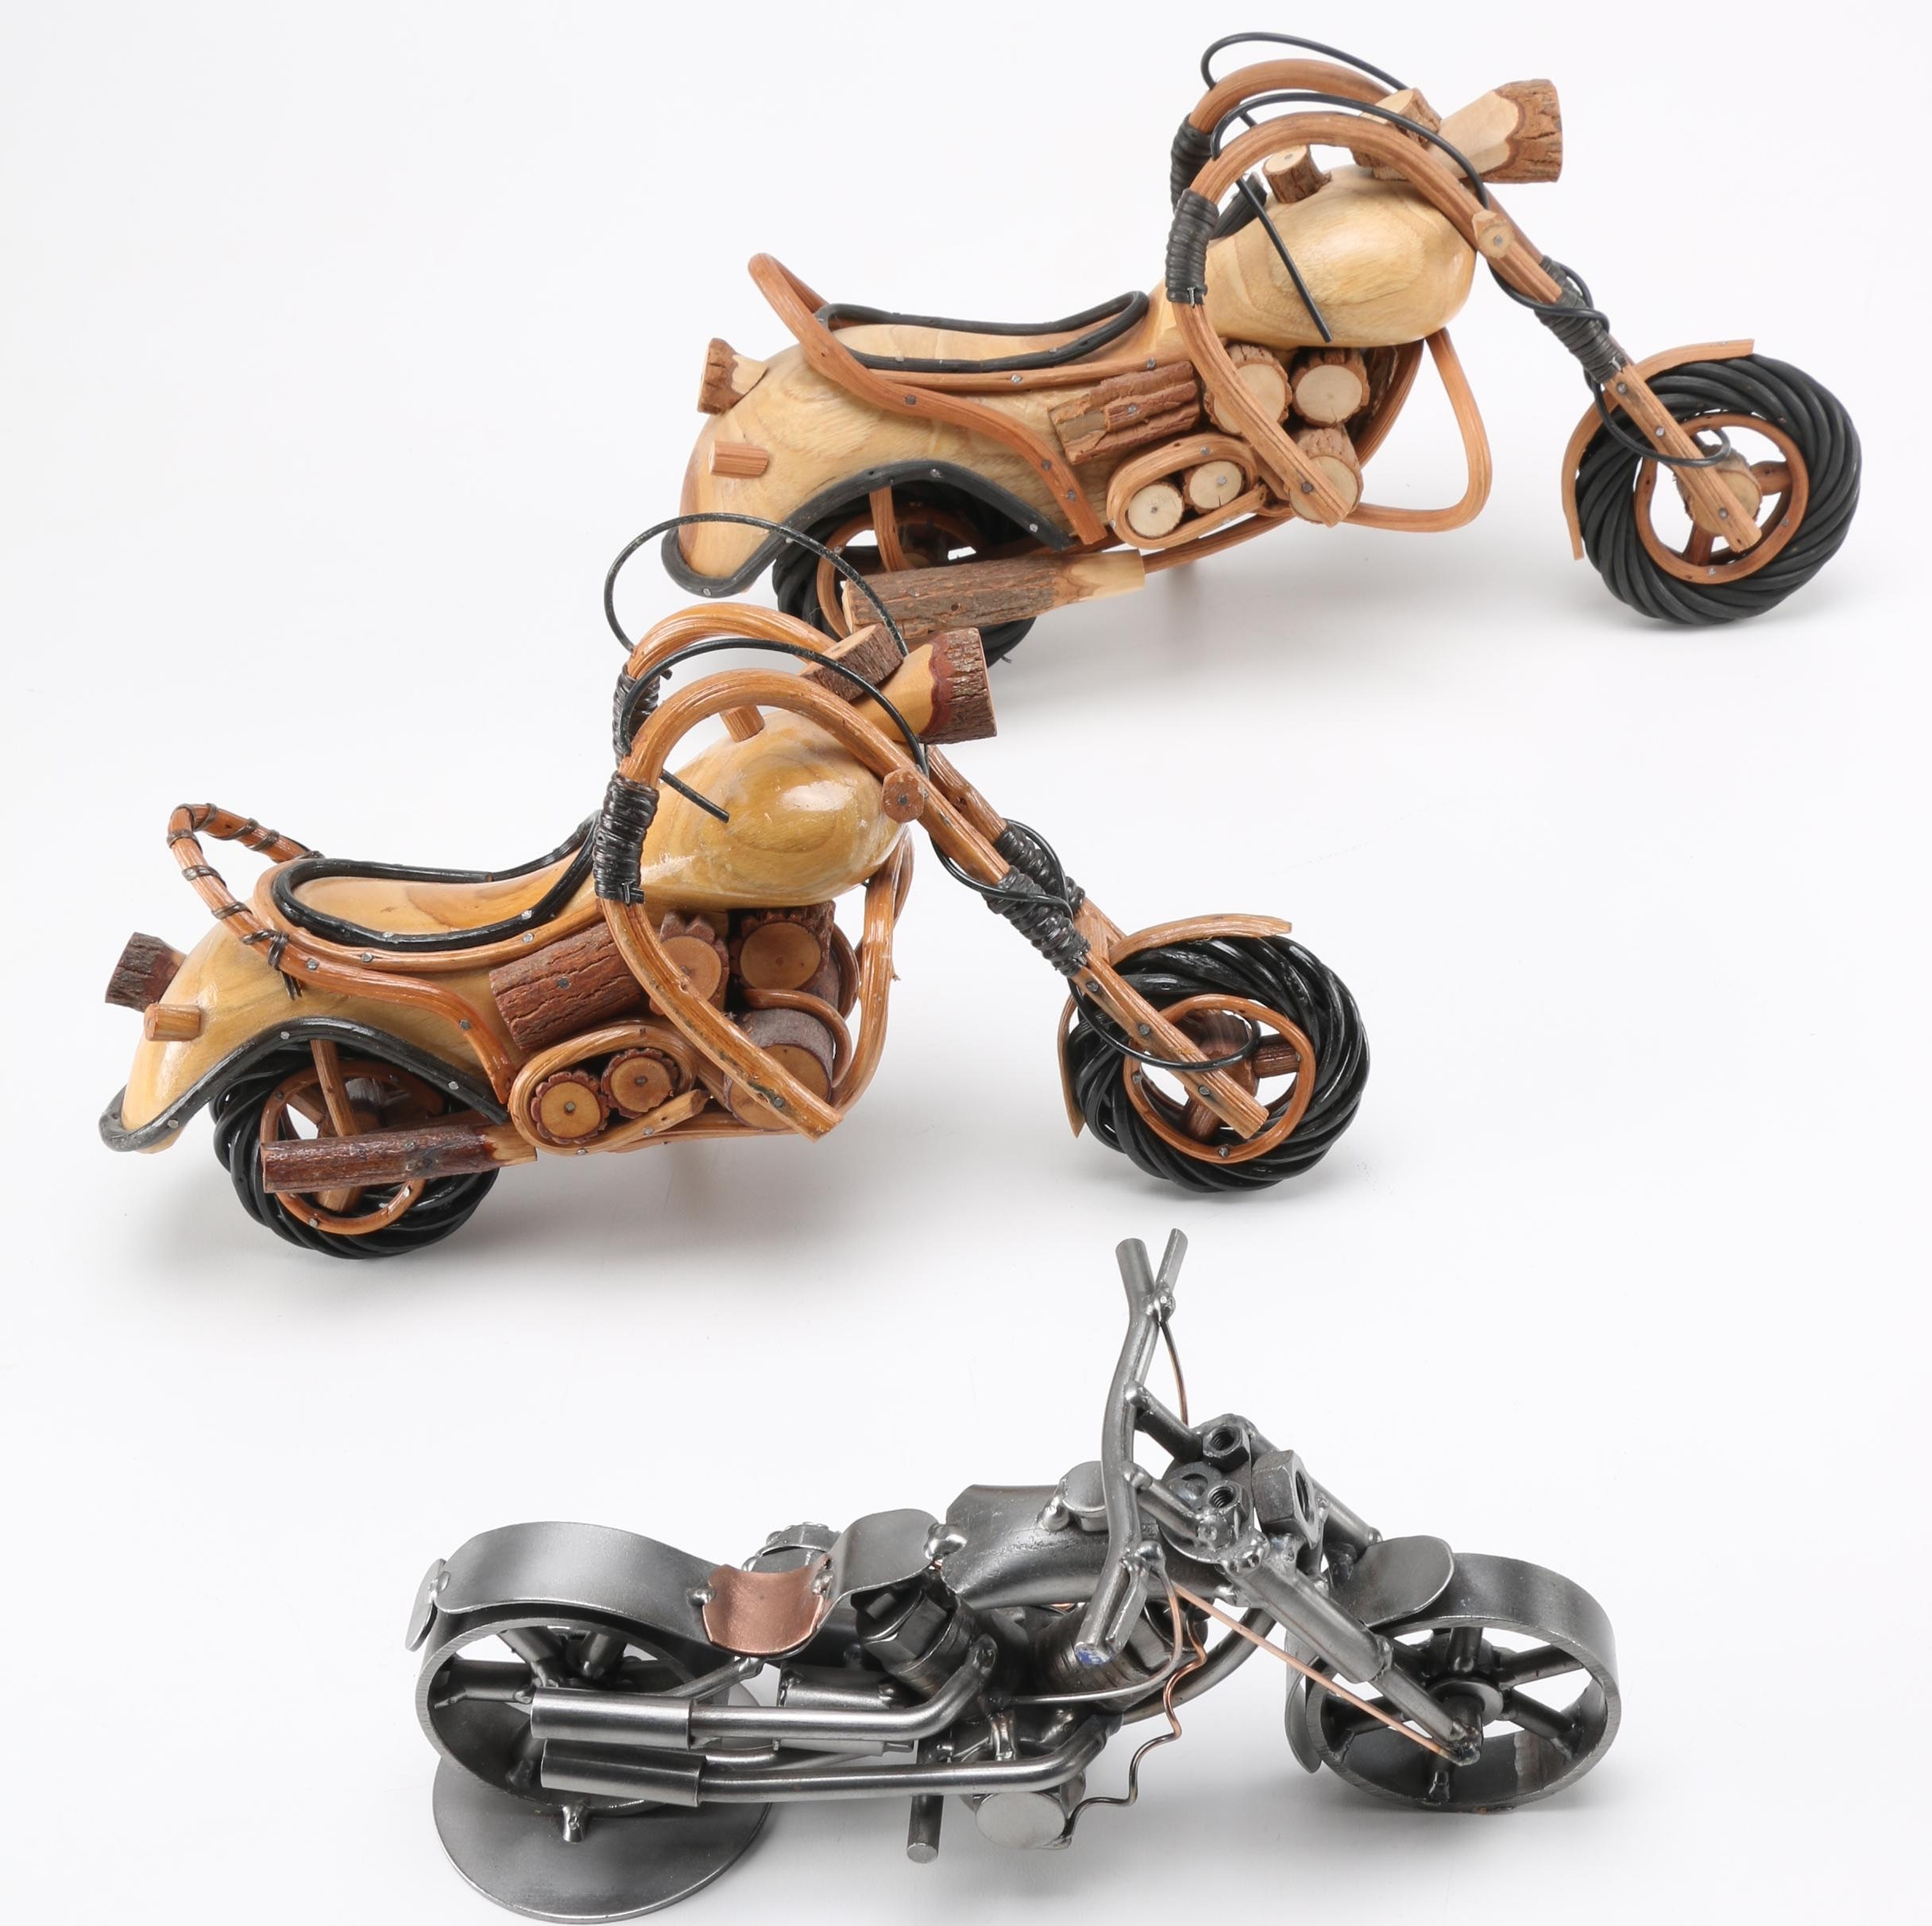 Group of Carved Wooden and Soldered Metal Motorcycles